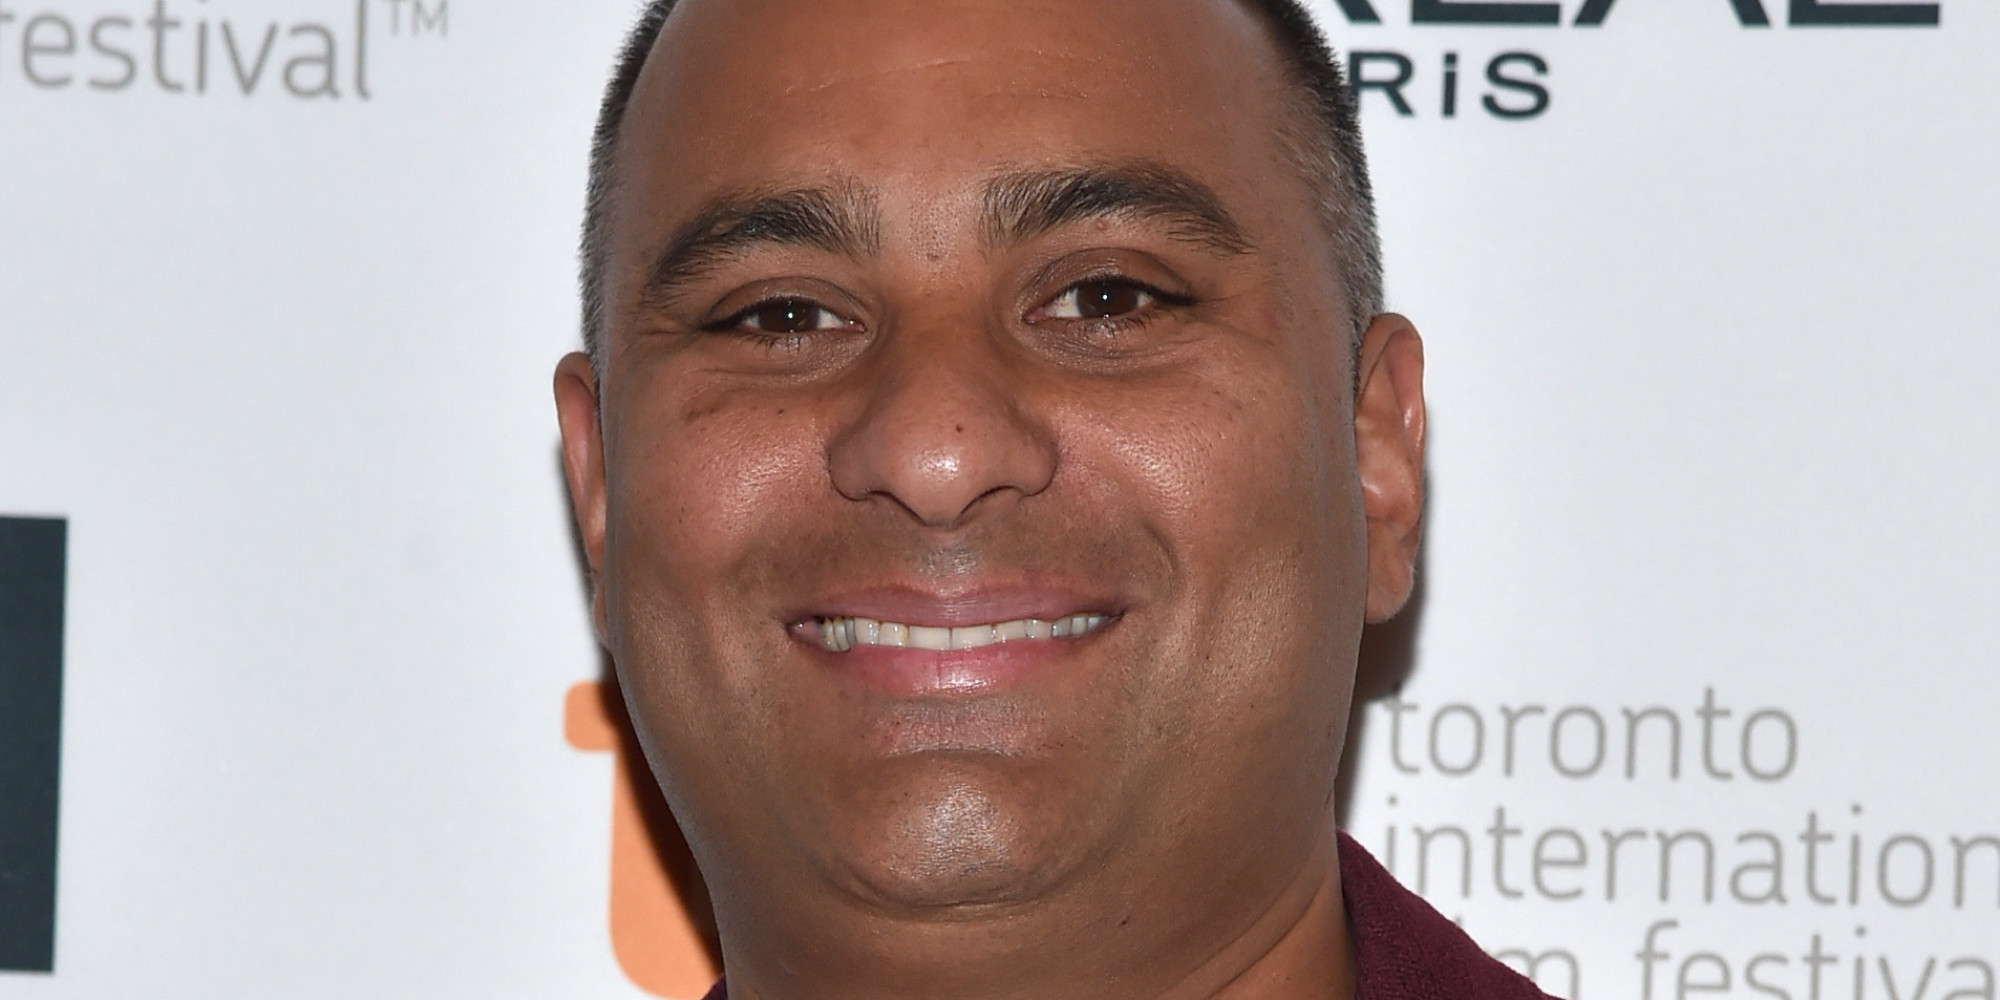 russell peters wife